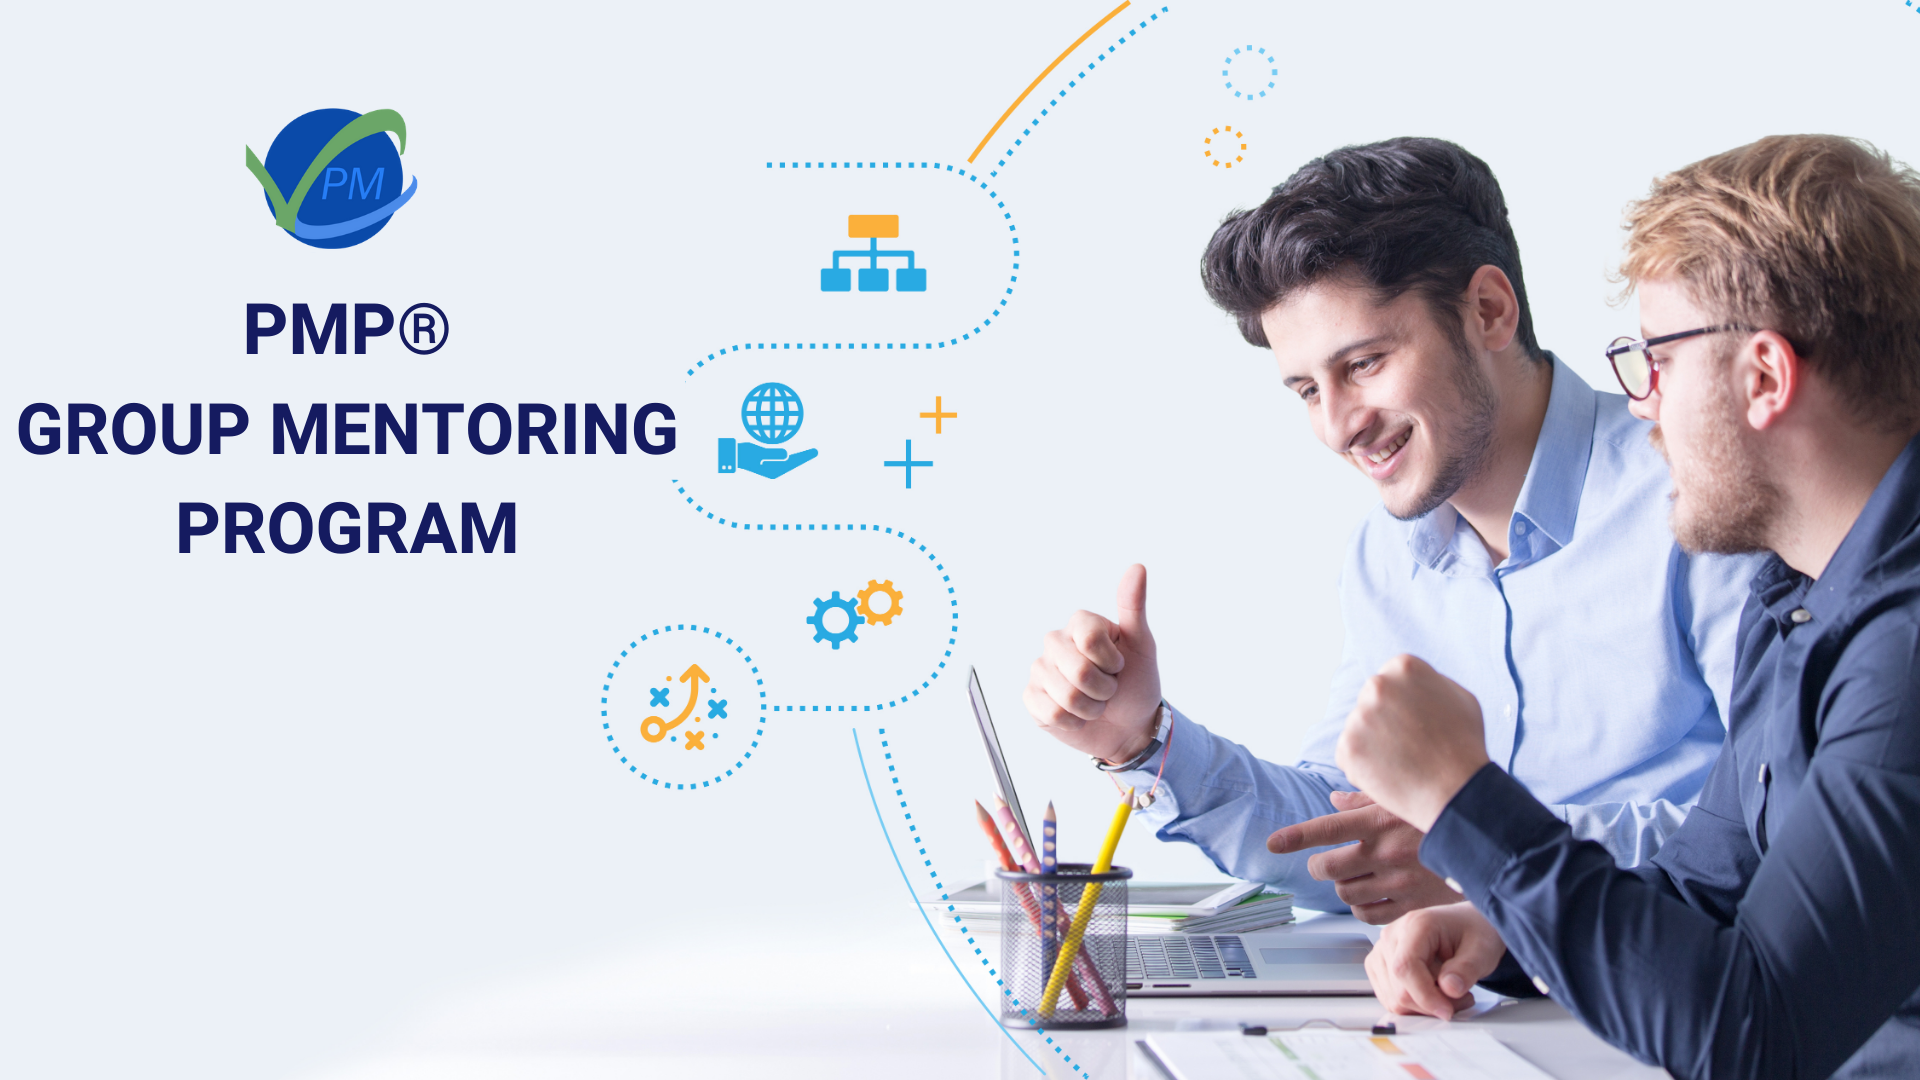 PMP® Group Mentoring Program, May 05, 2021, 6 - 9 PM (PDT) / 8 - 11 PM (CDT) /  May 06, 2021, 9 AM - 12 PM (SGT/MYT) / 11 AM - 2 PM (AEST)